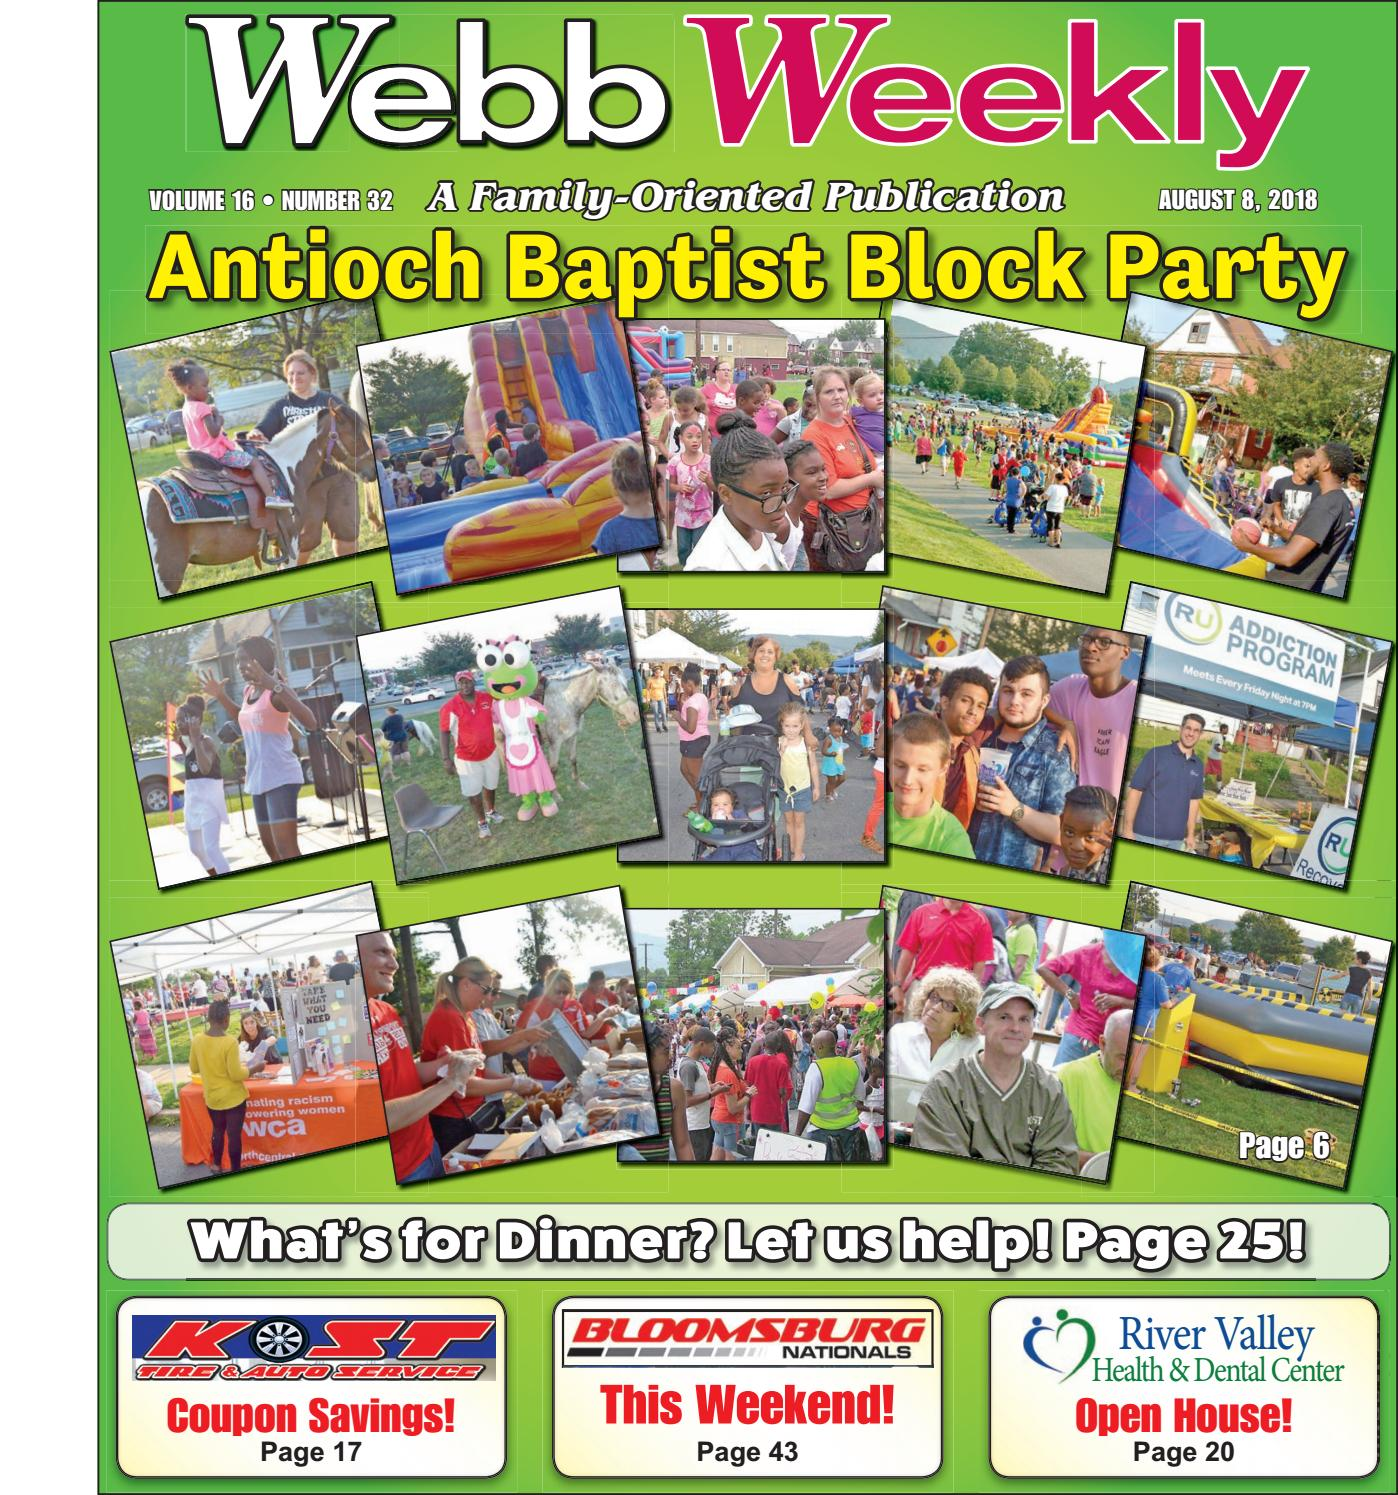 Webb Weekly August 8 2018 by Webb Weekly issuu